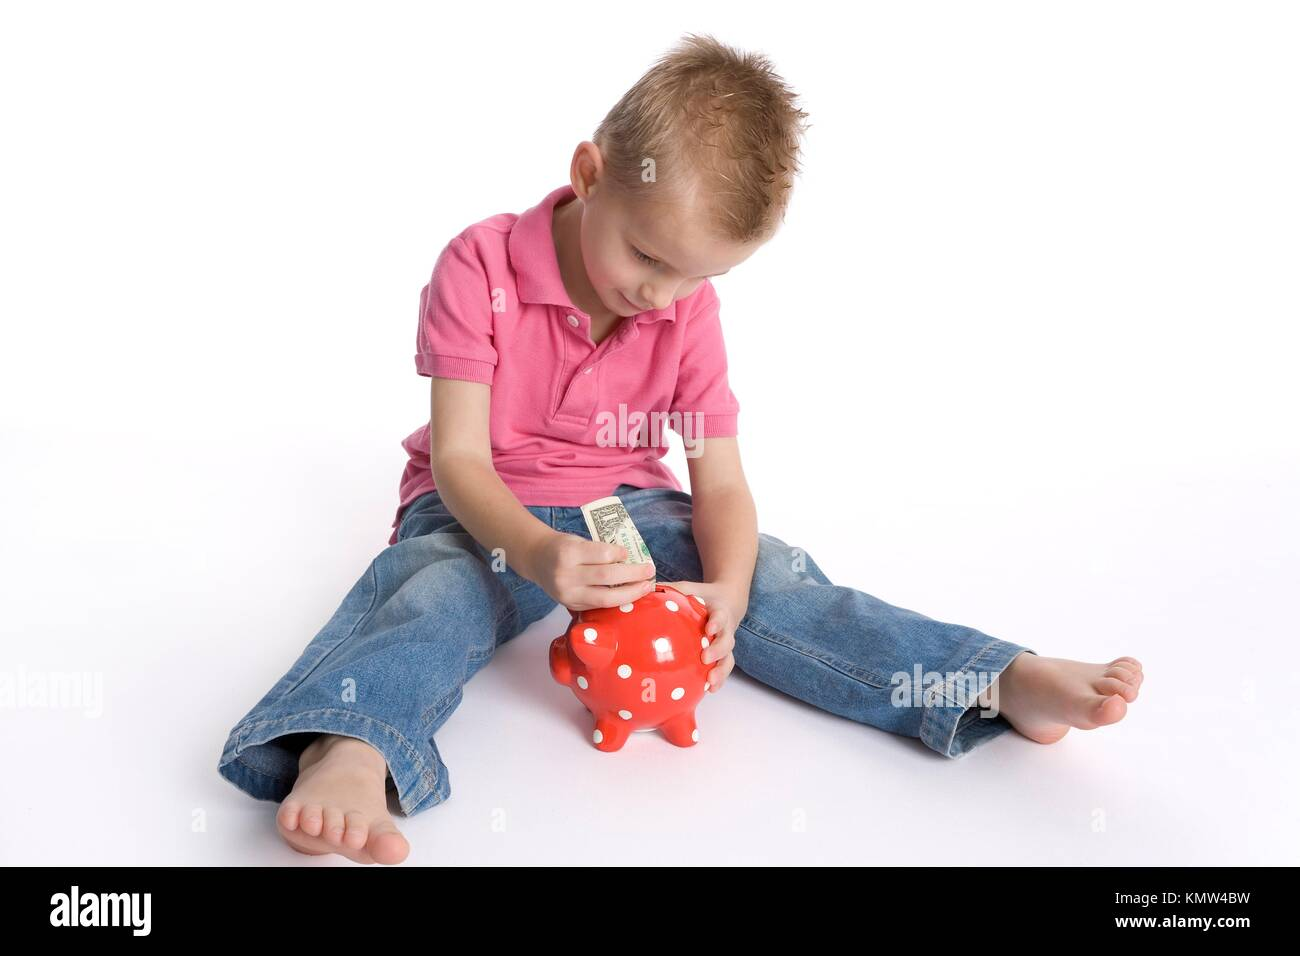 Little Boy Is Sitting On The Floor And Puts A Dollar Billet In A Piggy- Bank - Stock Image